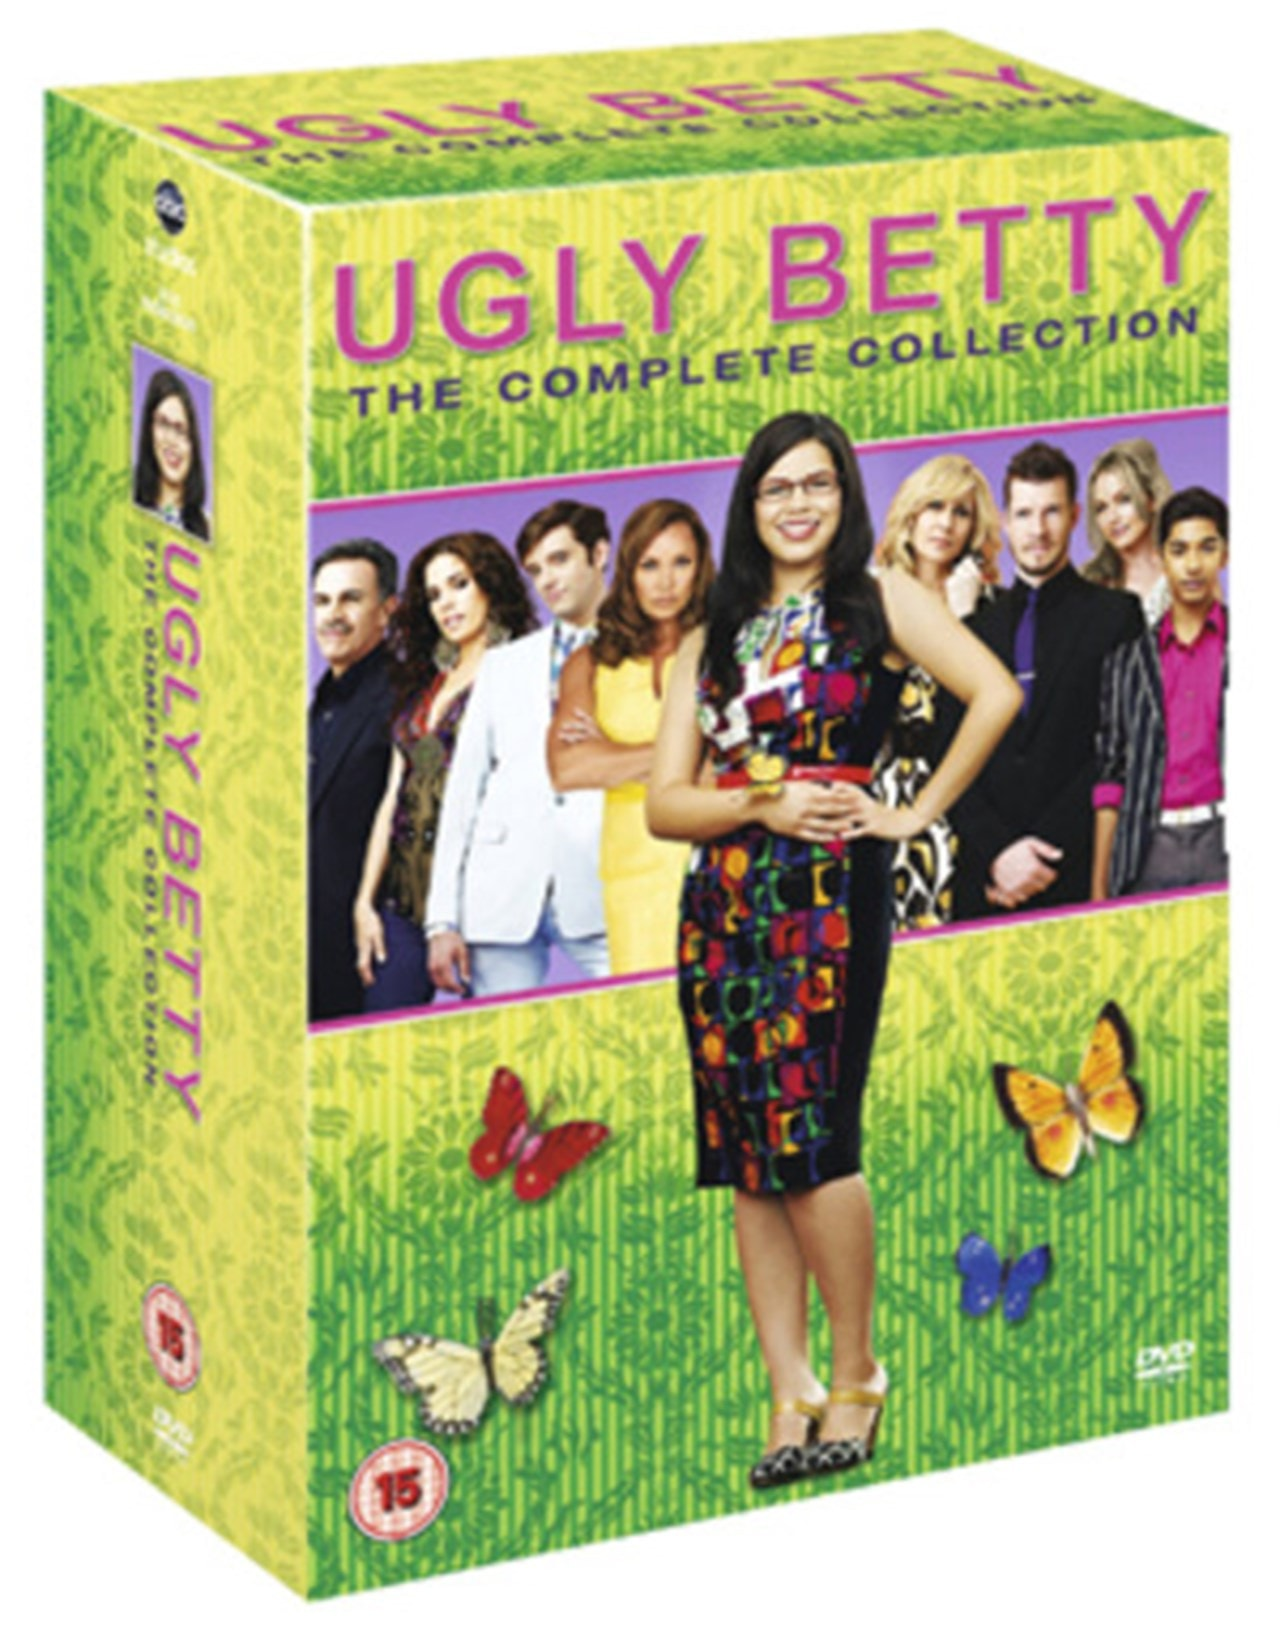 Ugly Betty: The Complete Collection - 1